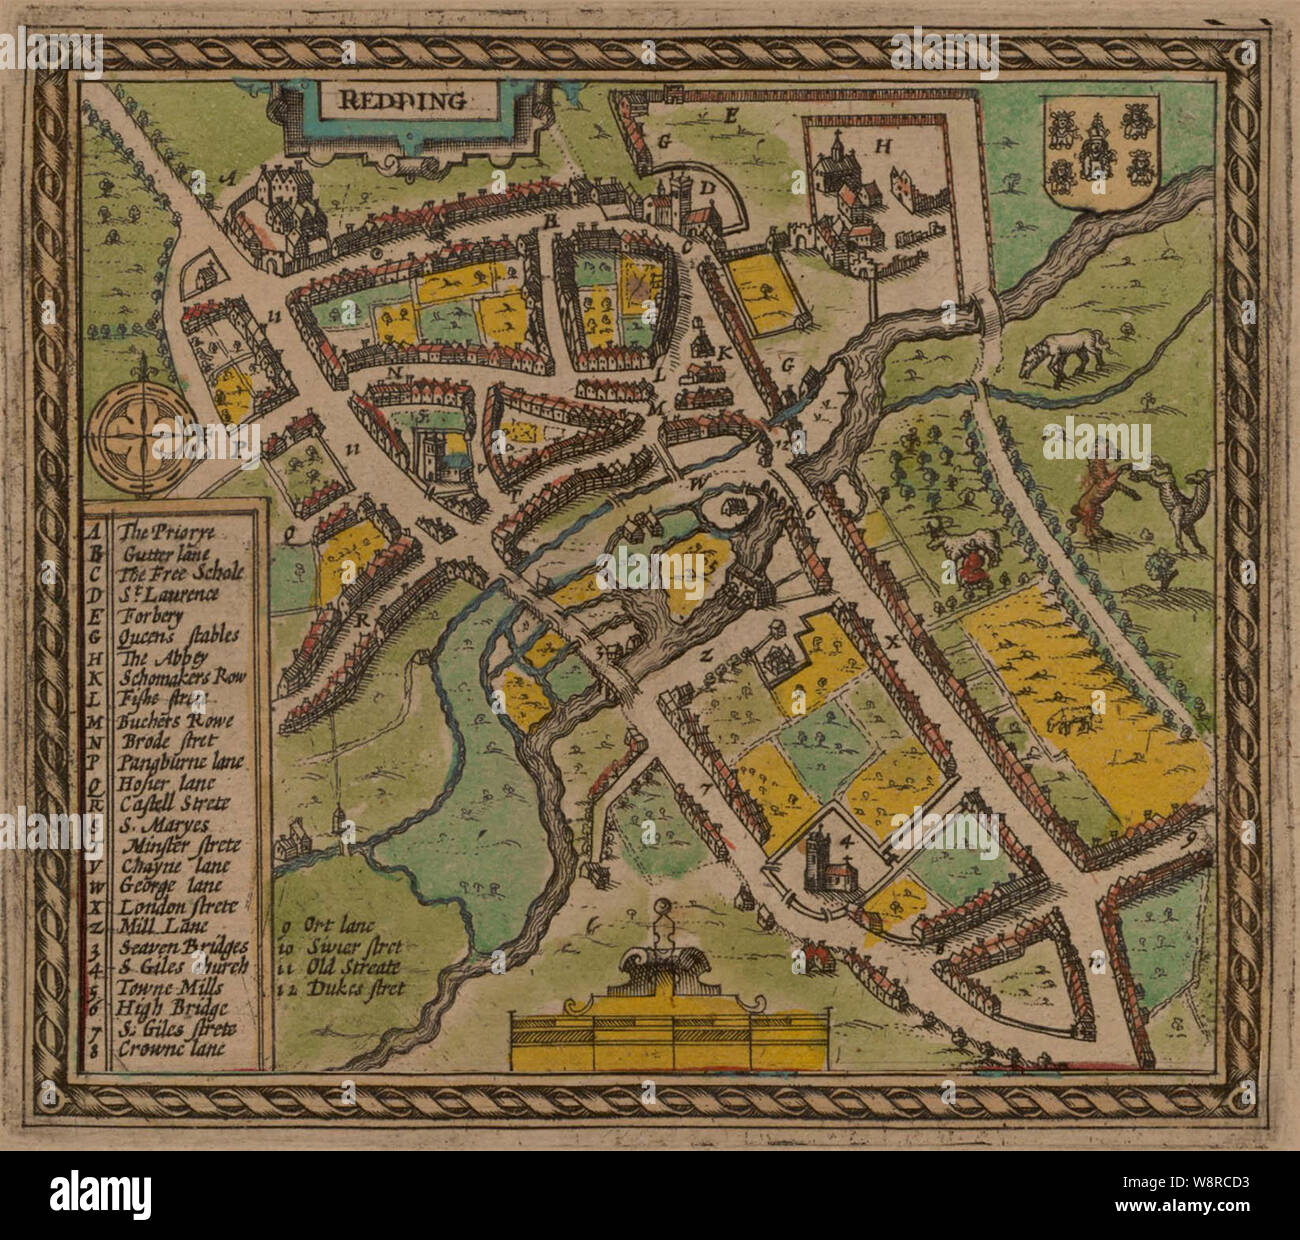 OLD COUNTY MAP OF GLOUCESTERSHIRE 1611 BY JOHN SPEED